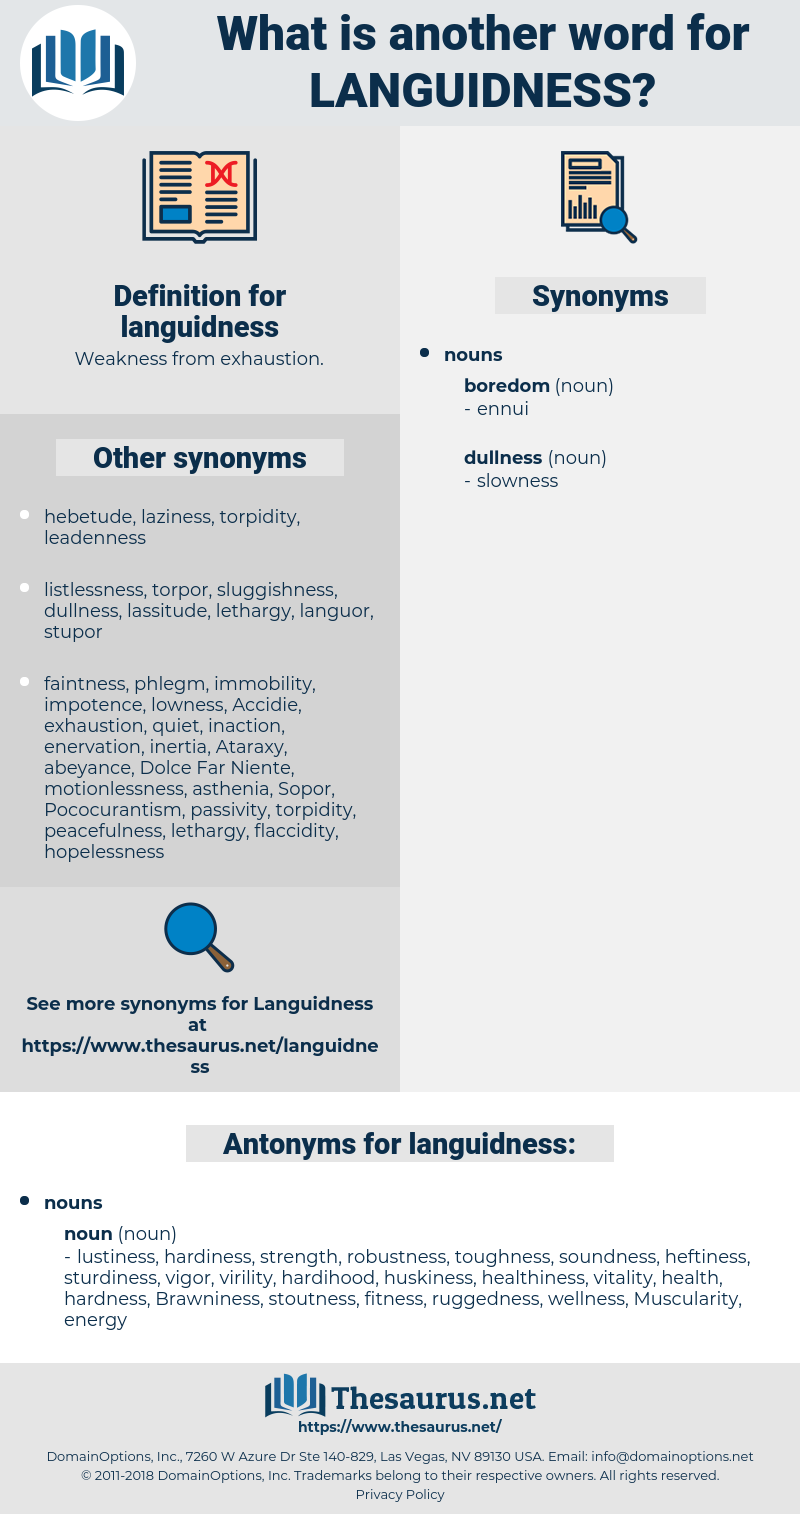 languidness, synonym languidness, another word for languidness, words like languidness, thesaurus languidness